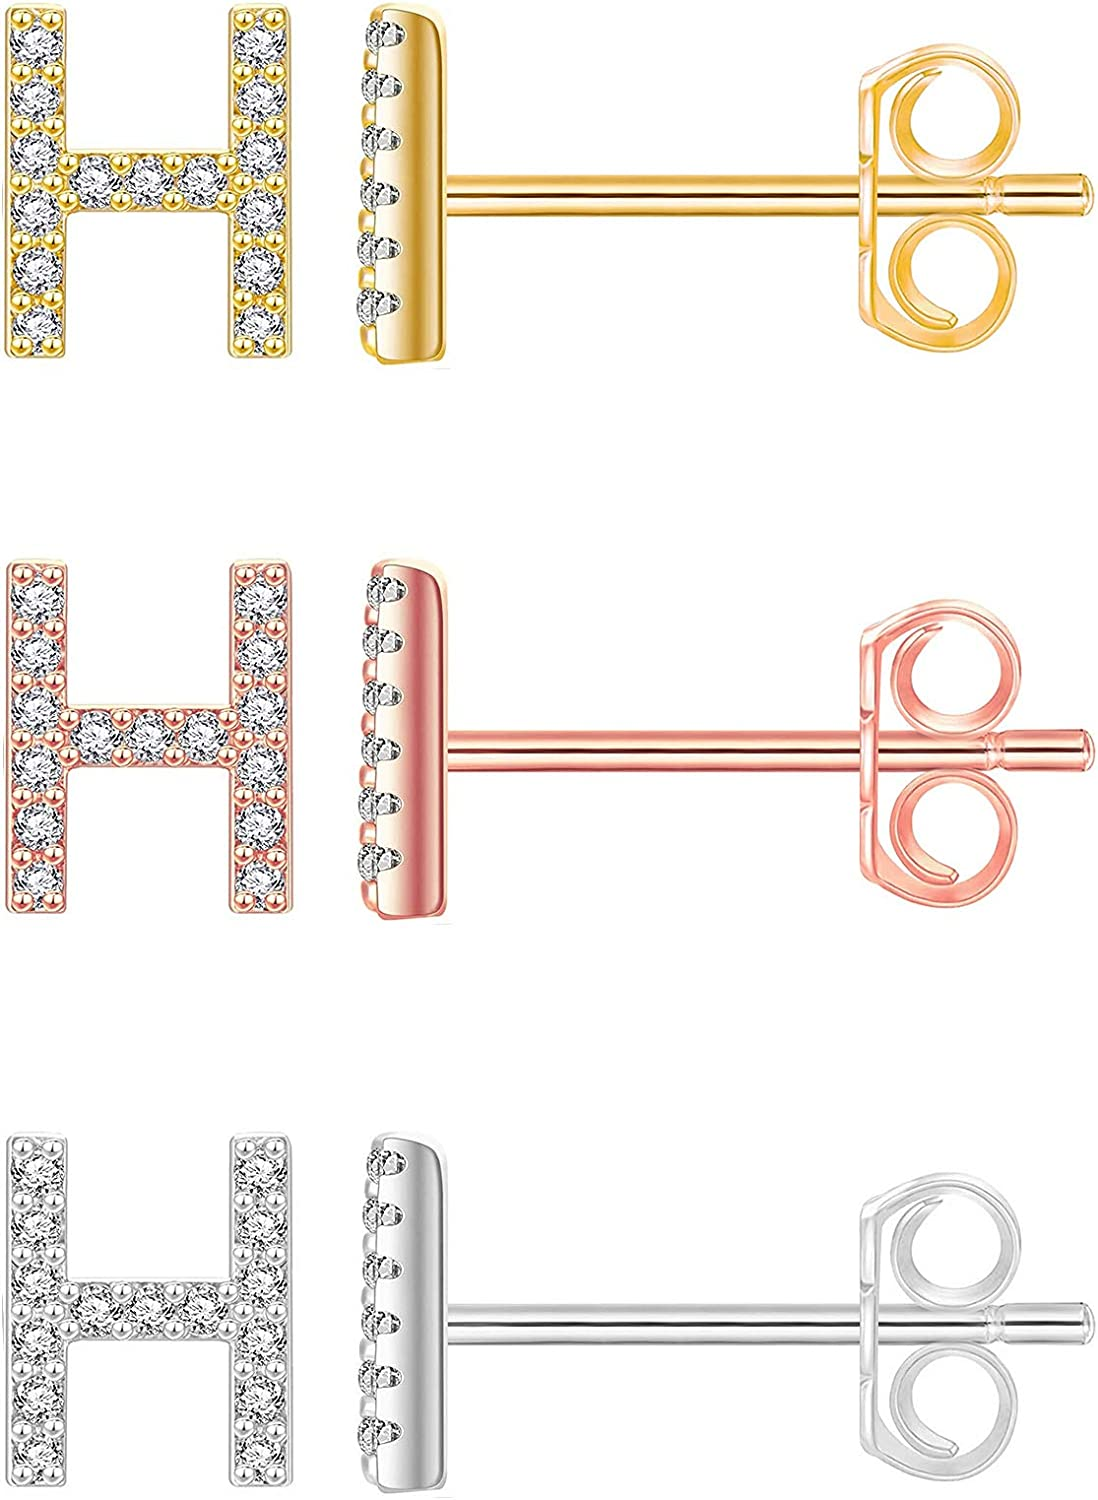 3 Pairs Initial Popular product Stud Earrings 14K Silver store Rose Gold Plated C